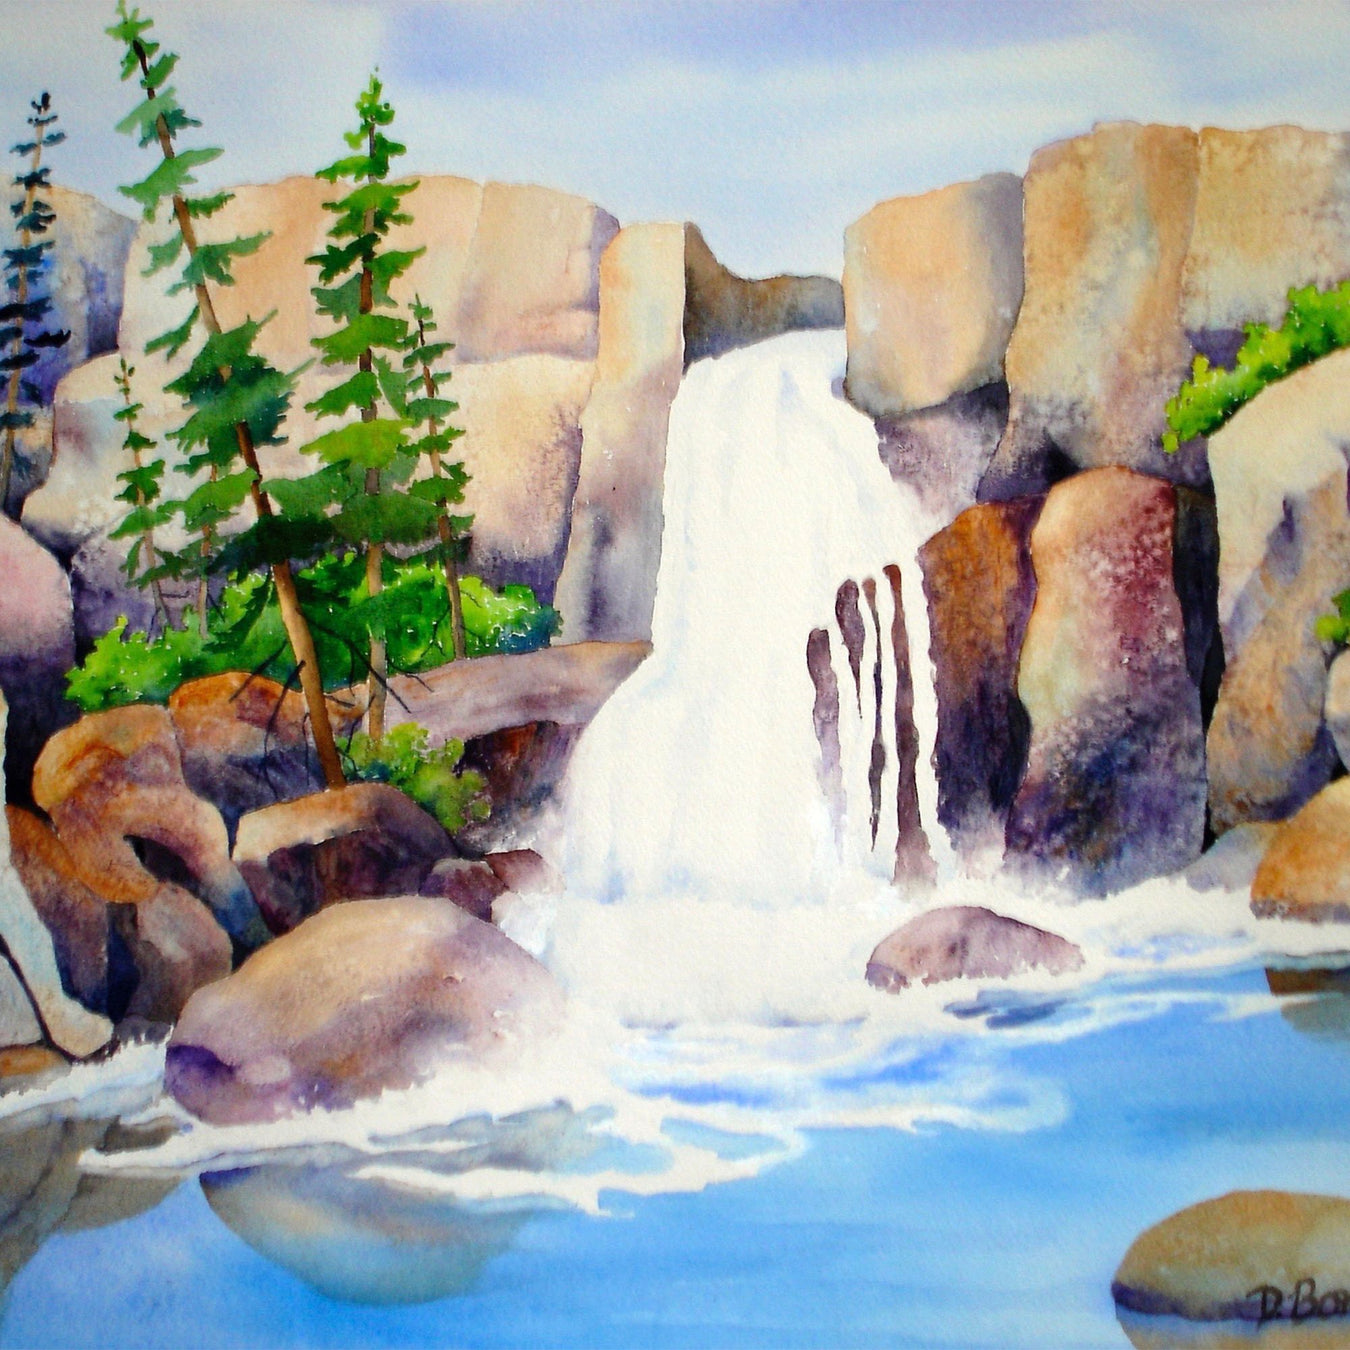 Back-in-Time Gallery - Paintings by Donna Bonin | Artfest Ontario